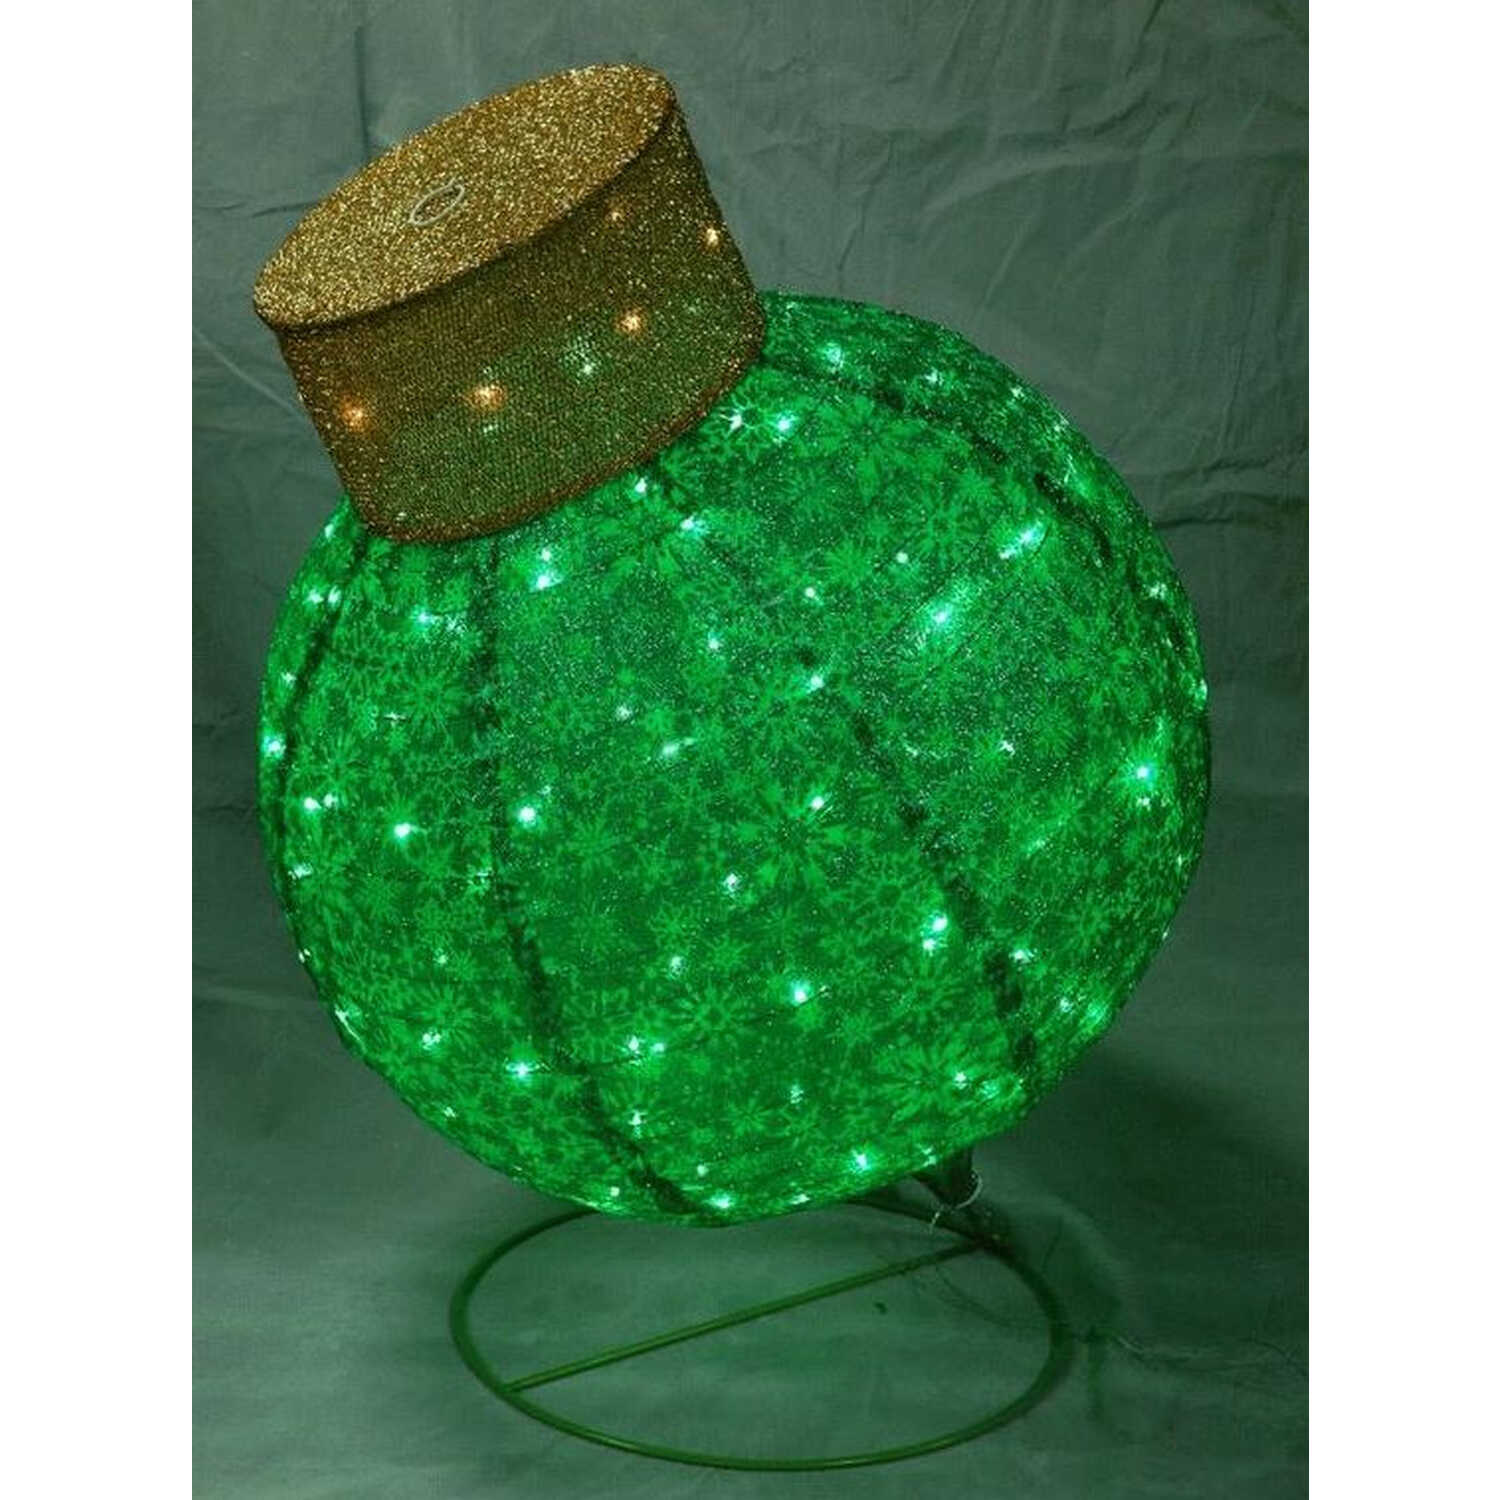 Citi-Talent  Ornament  Holiday Decoration  Green  1 each Fabric